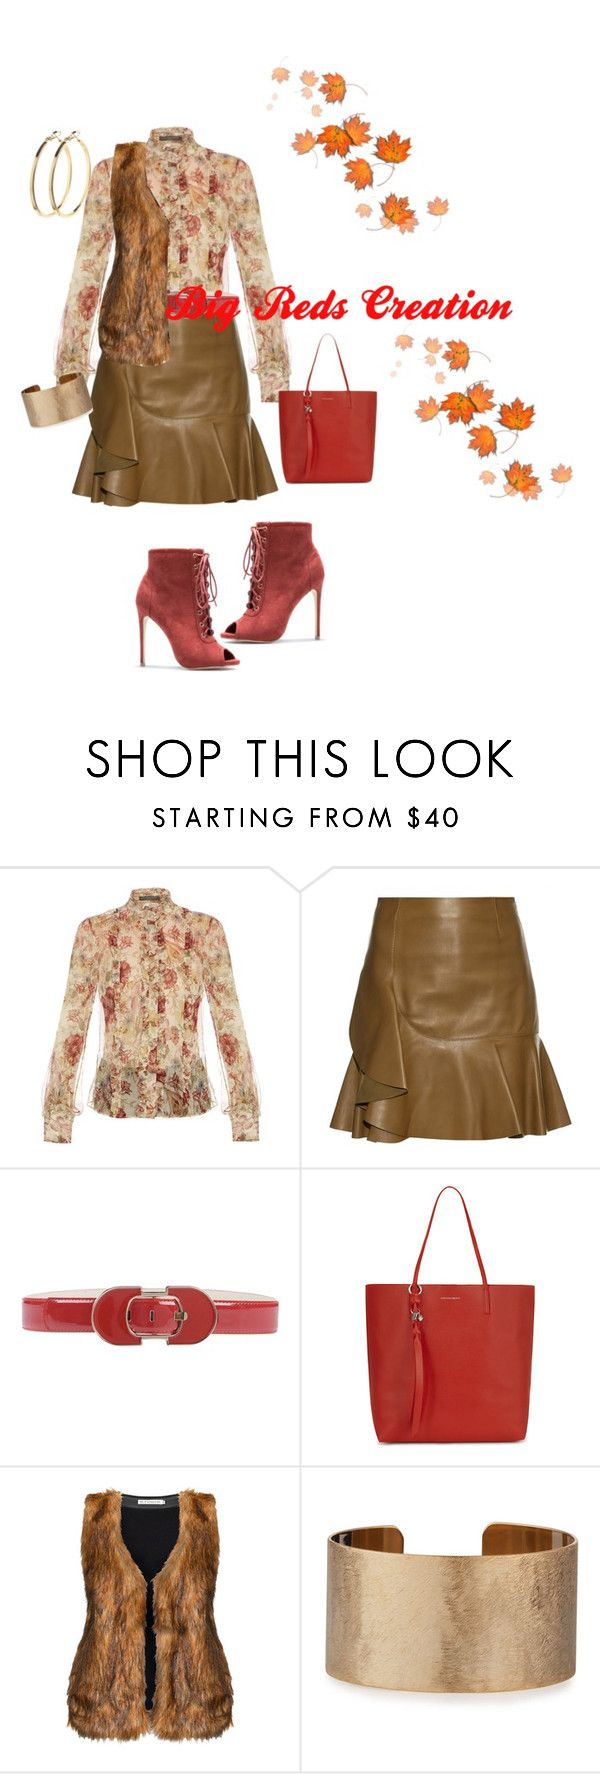 """""""It's Fall"""" by bigreds ❤ liked on Polyvore featuring Alexander McQueen, Morgan De Toi, Studio, Panacea and Pieces"""